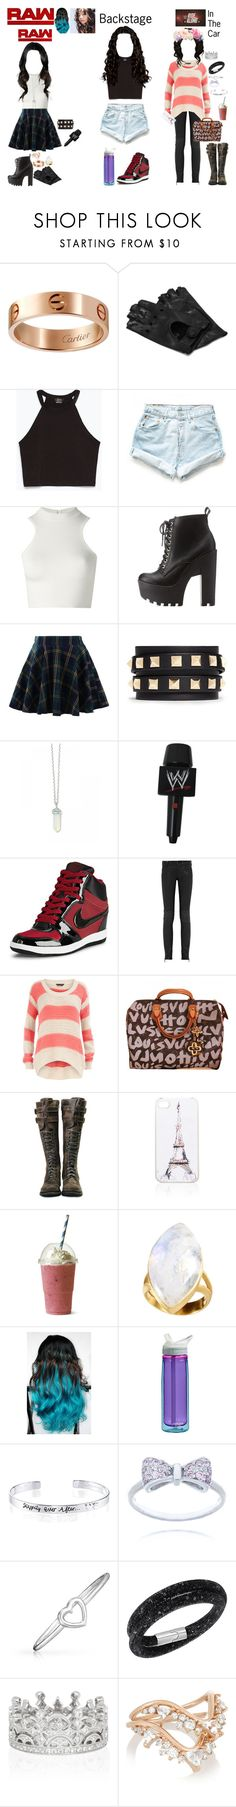 """WWE RP"" by kaelighofficial ❤ liked on Polyvore featuring WWE, Cartier, Napoli, Zara, Levi's, Versace, Charlotte Russe, Chicwish, Valentino and NIKE"